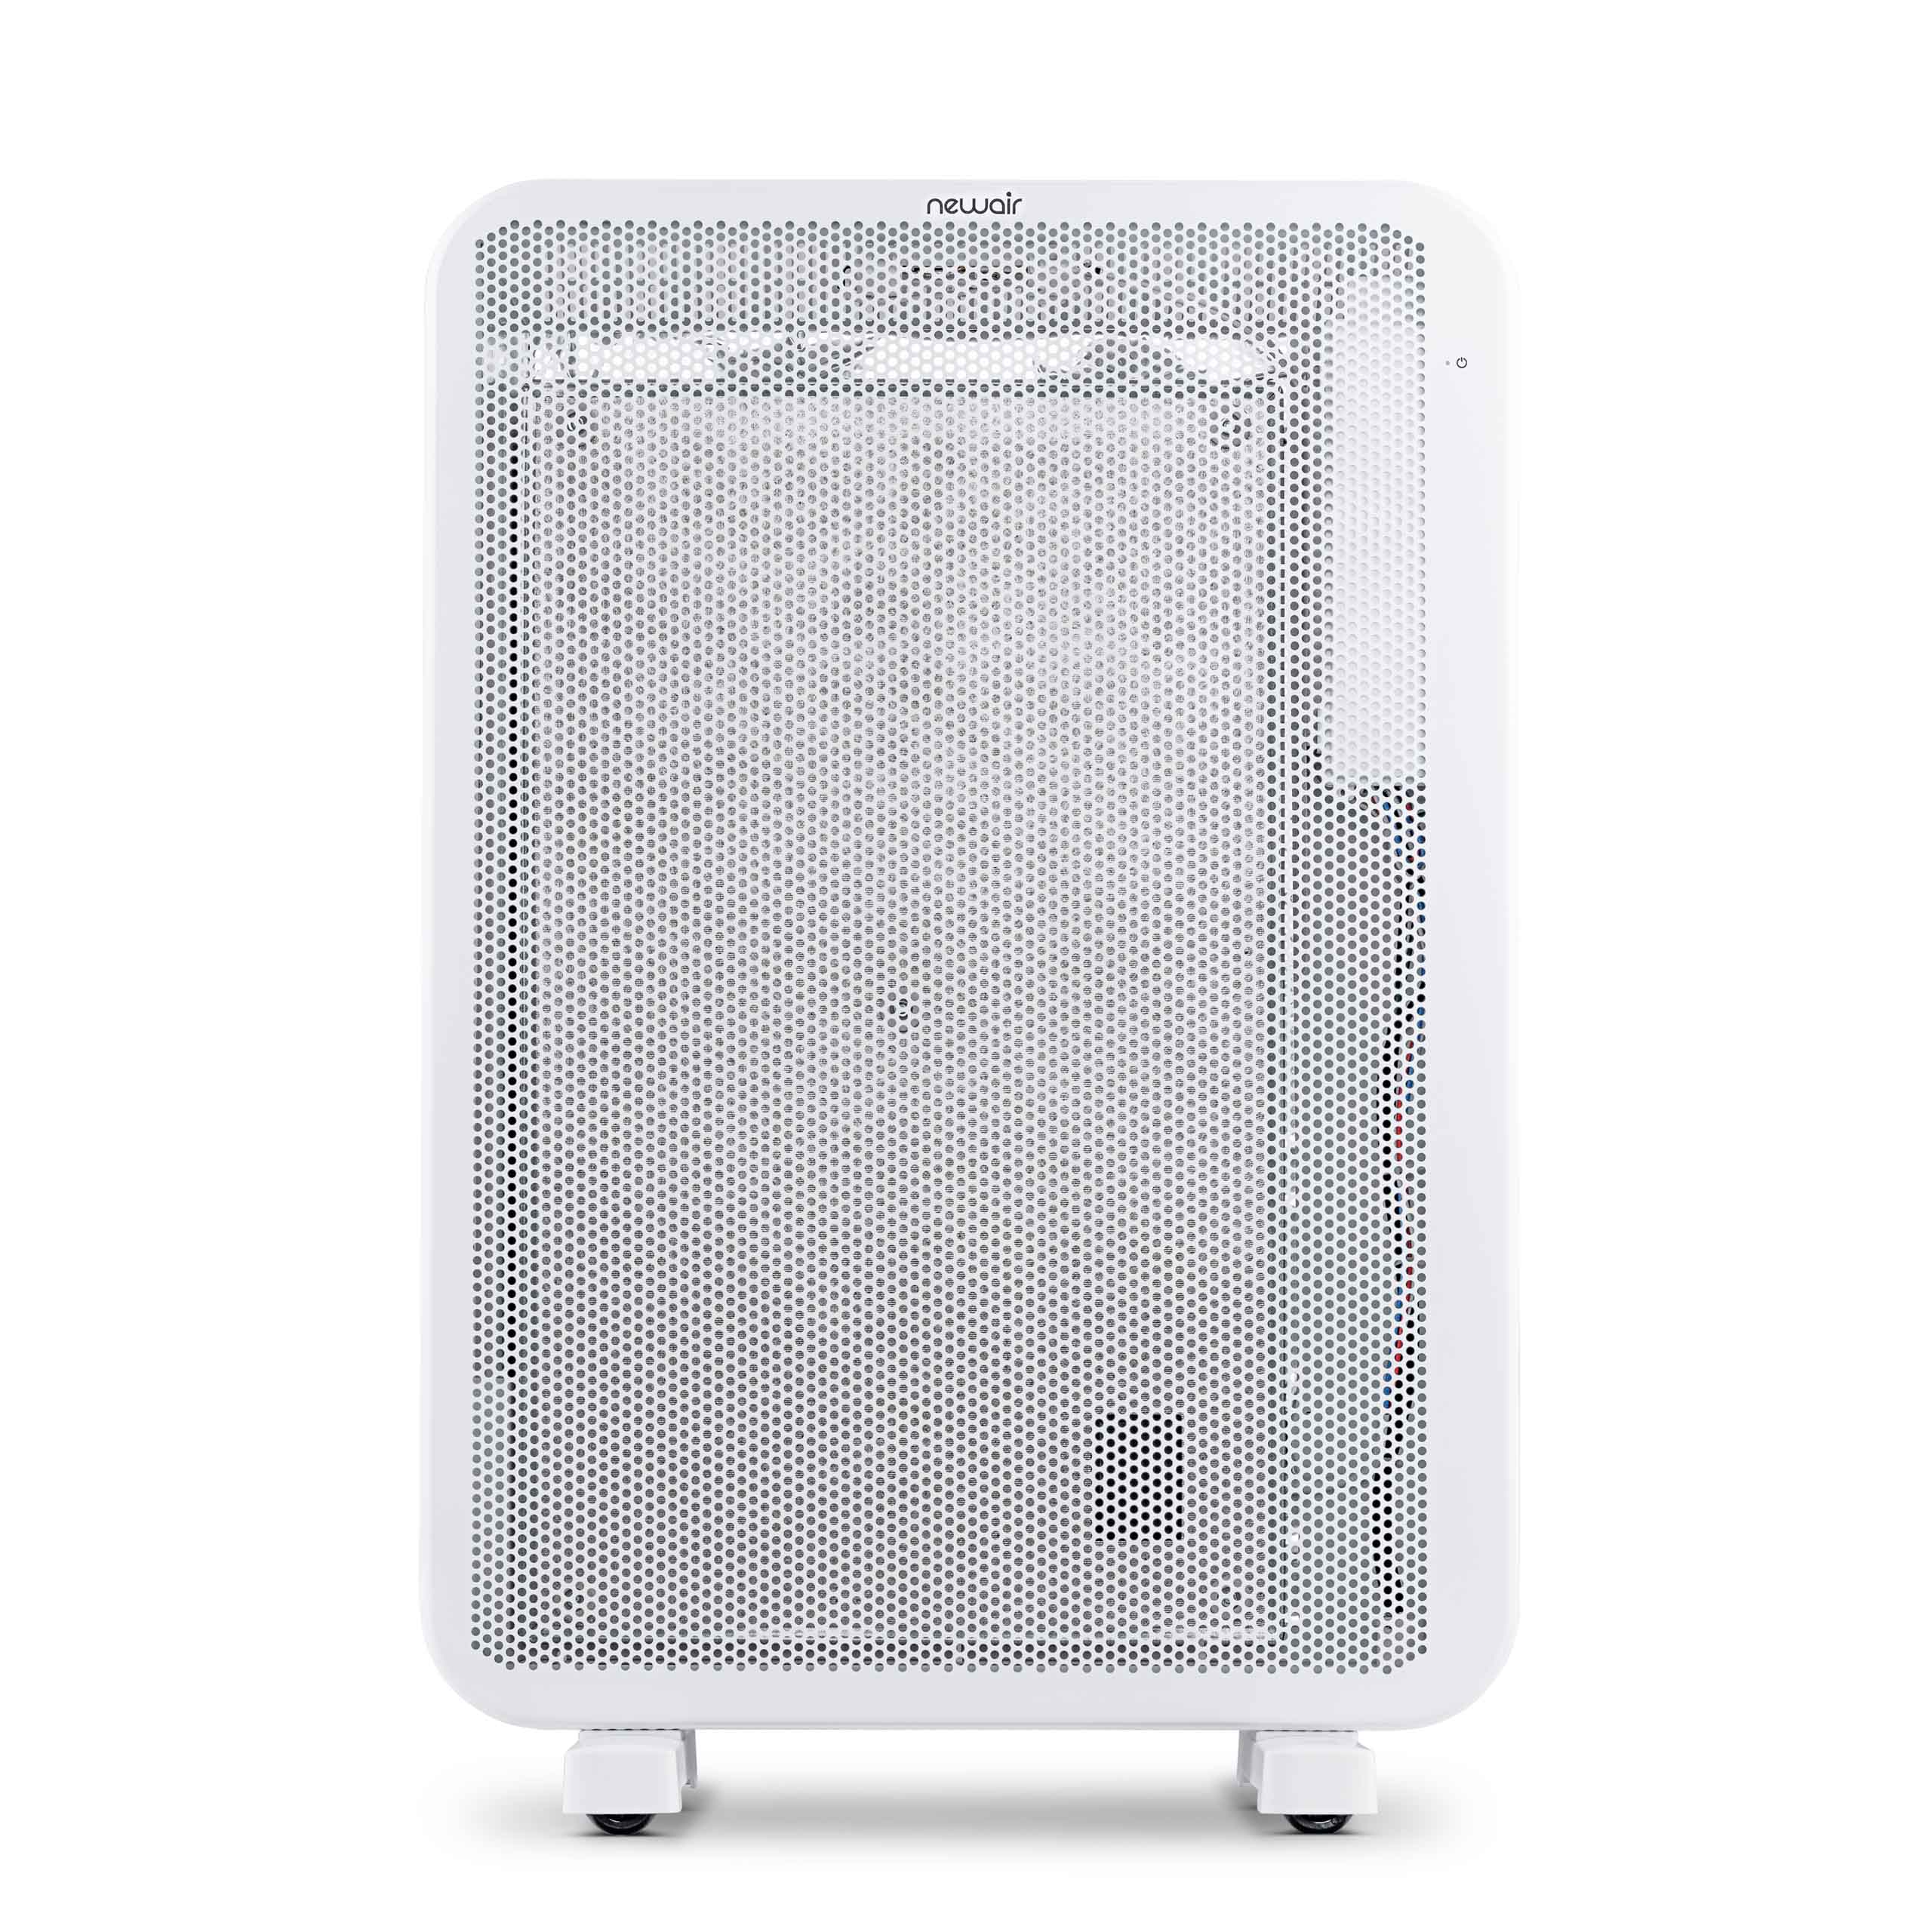 NewAir_DiamondHeat™_2in1_Portable_or_Wall_Mounted_Convection_Heater